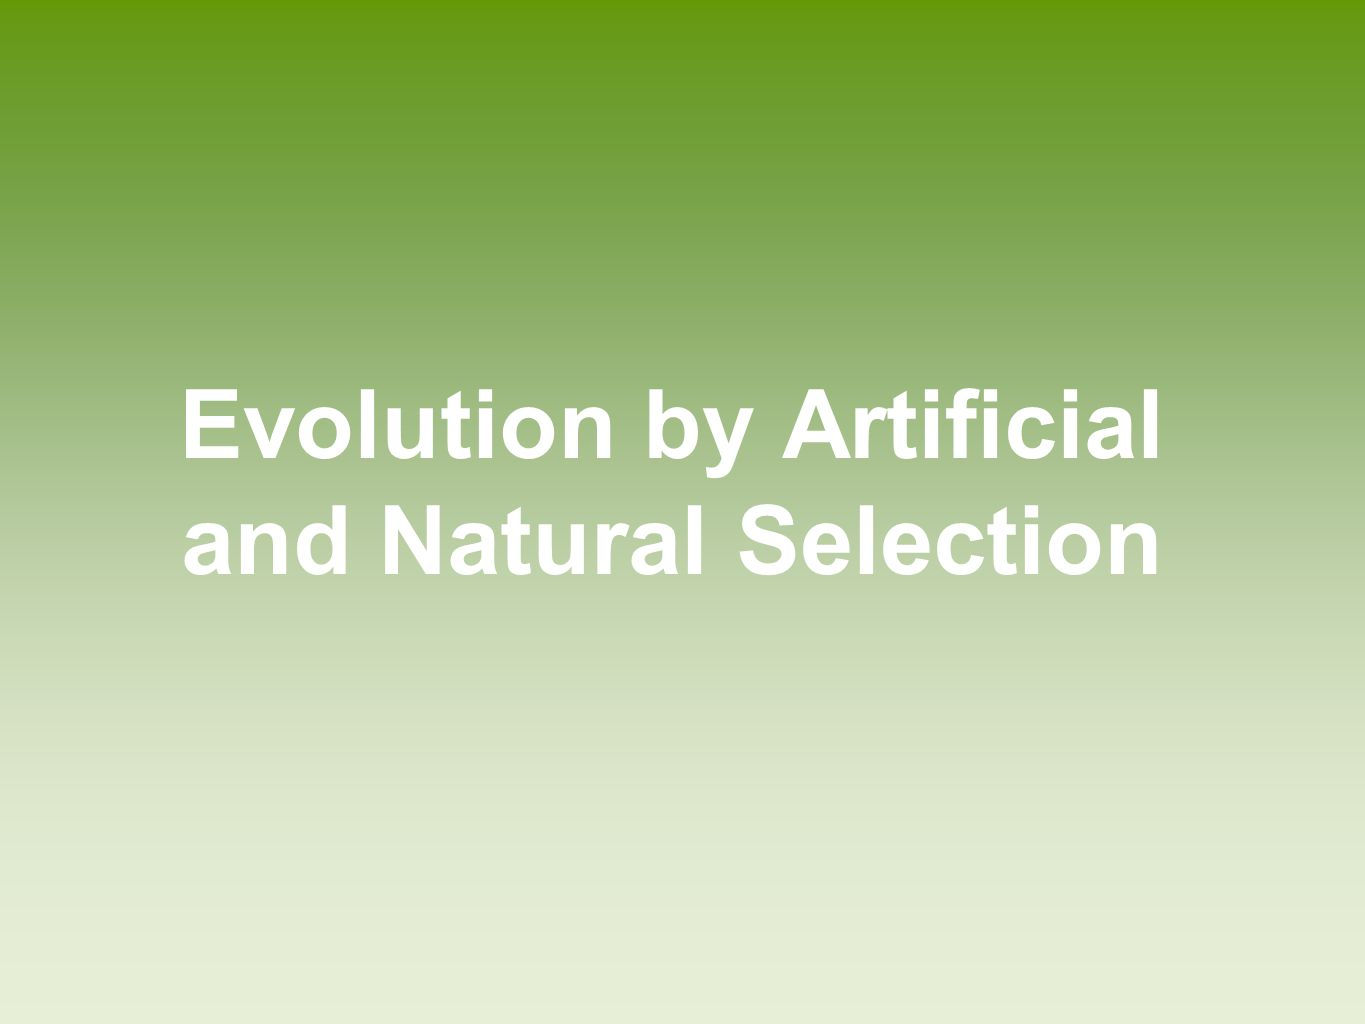 Evolution by Artificial Selection Evolution by artificial selection―when humans determine which individuals breed Good examples are the more than 400 modern breeds of dogs, and 800 breeds of domestic cattle.